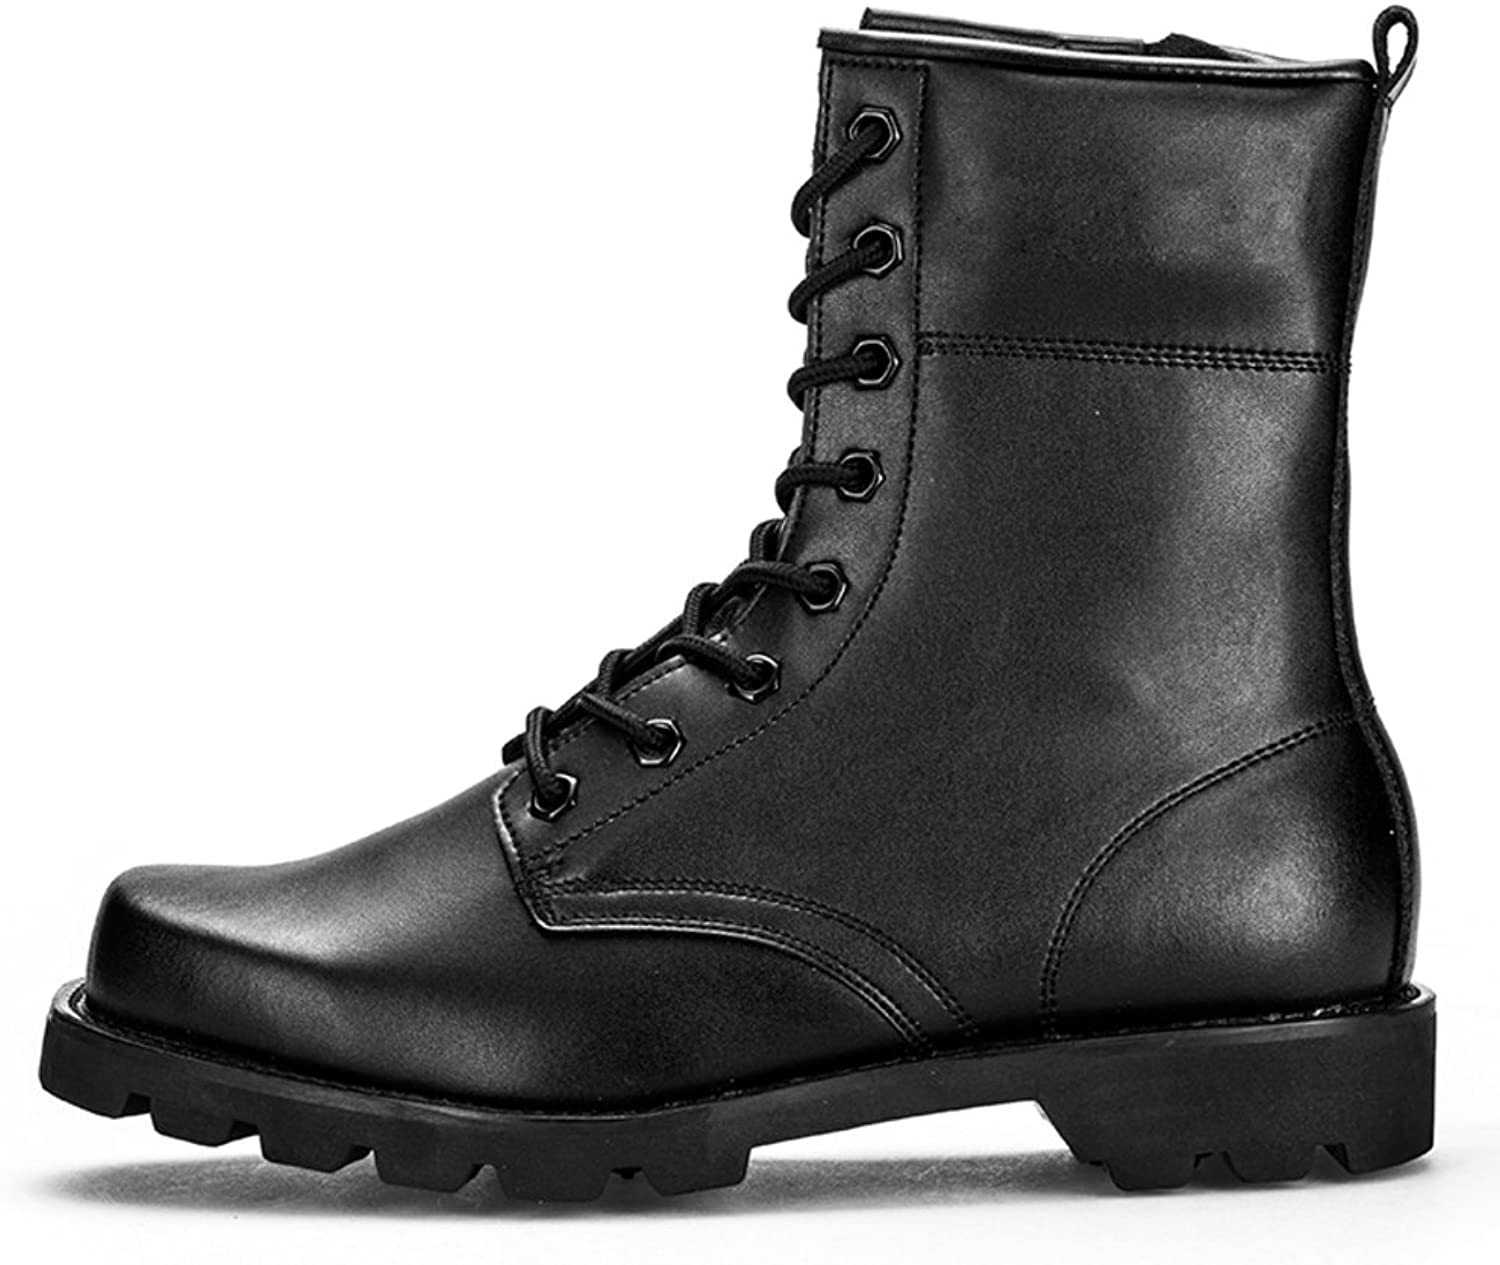 Men's outdoor boots in the autumn hiking shoes